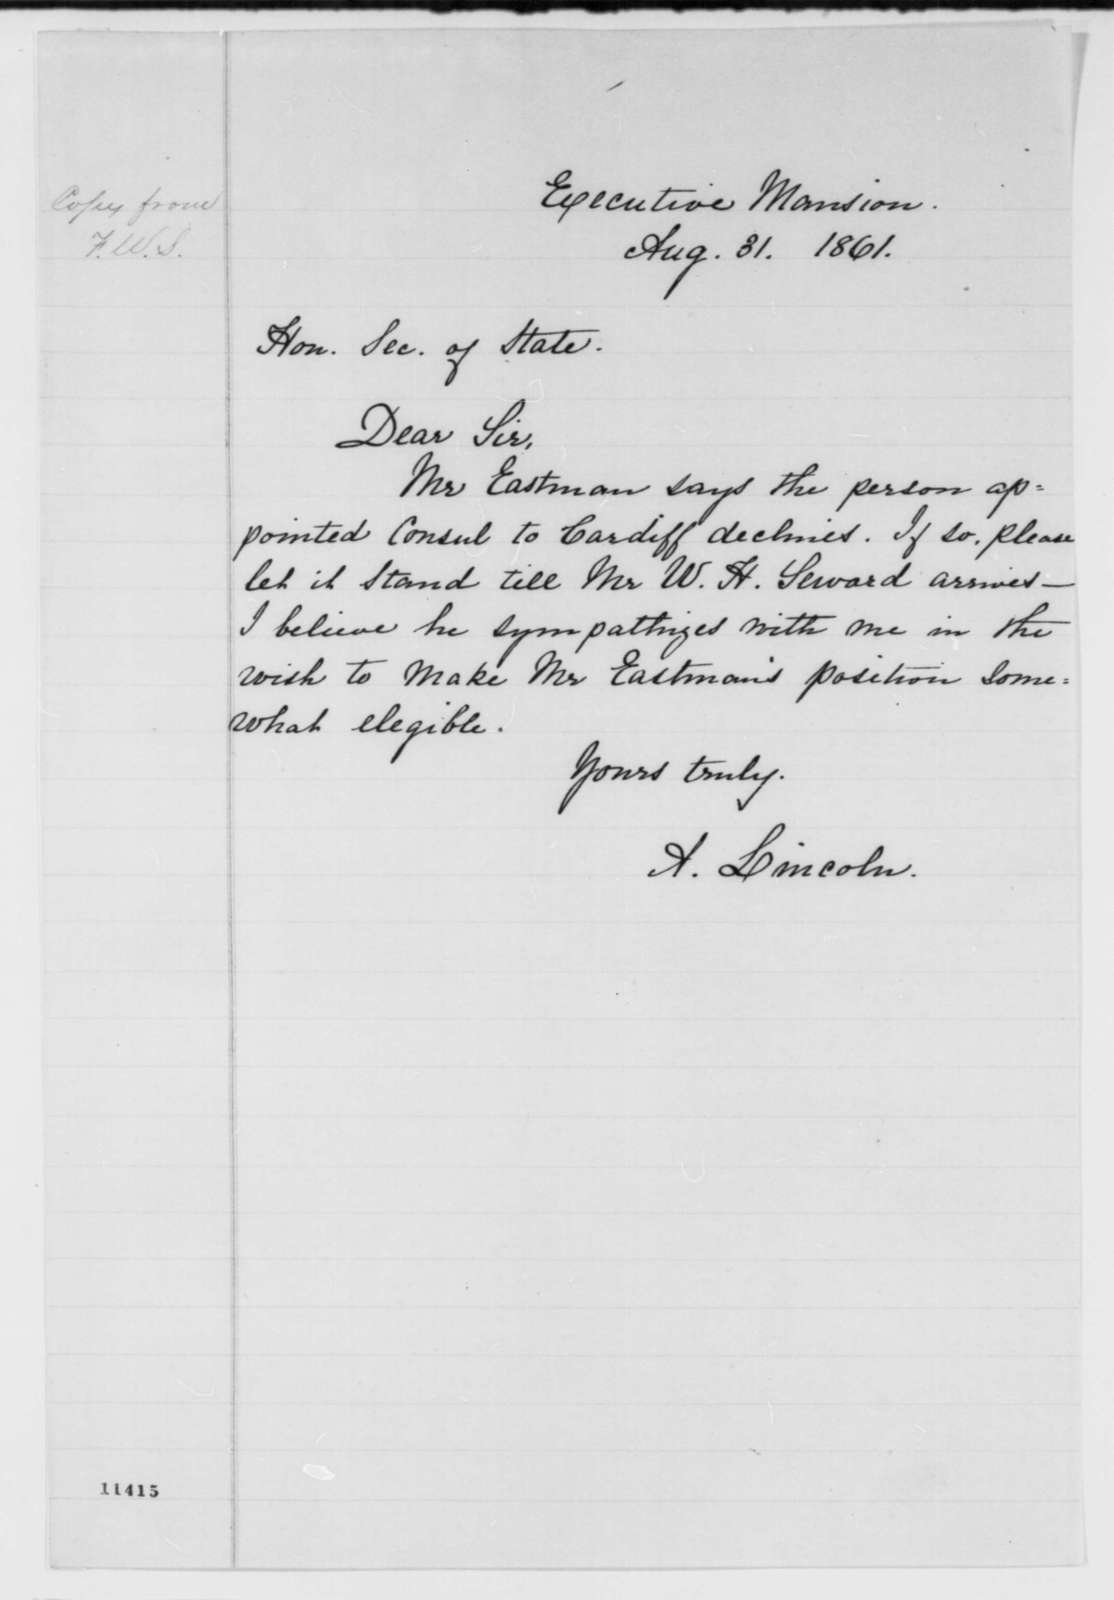 Abraham Lincoln to Frederick W. Seward, Saturday, August 31, 1861  (Appointment for Zebina Eastman)